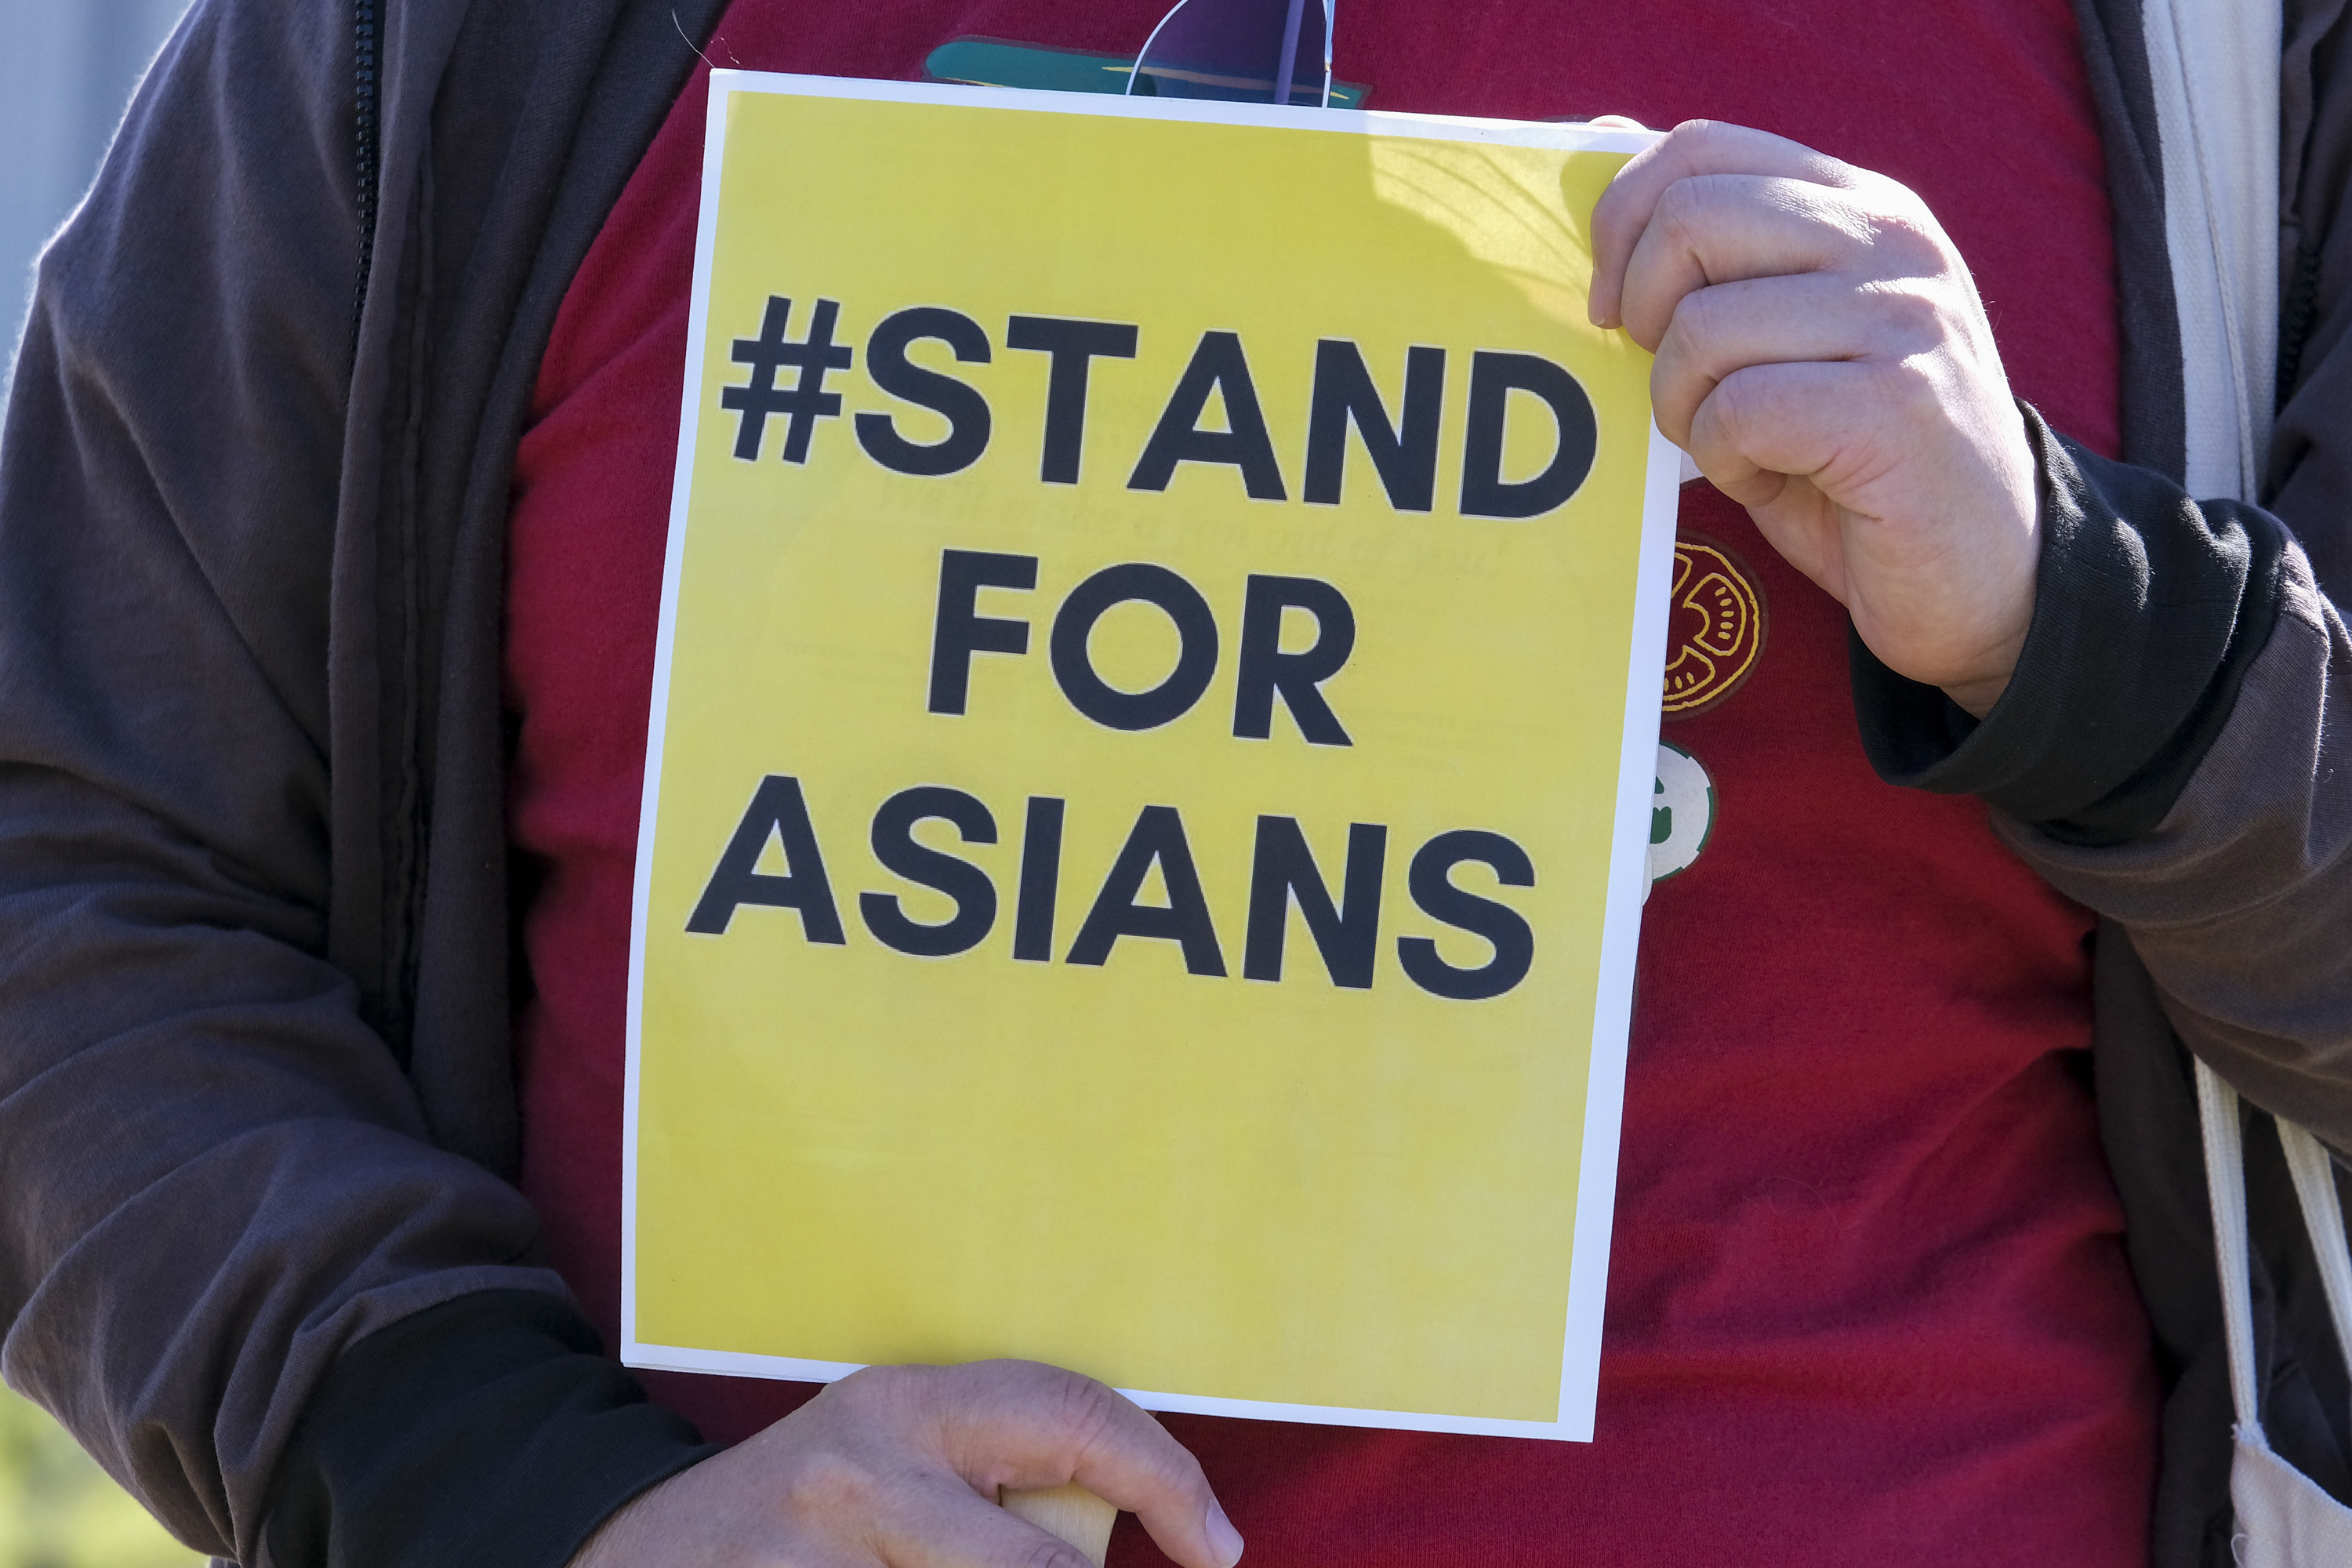 #StandForAsians Yellow Sign